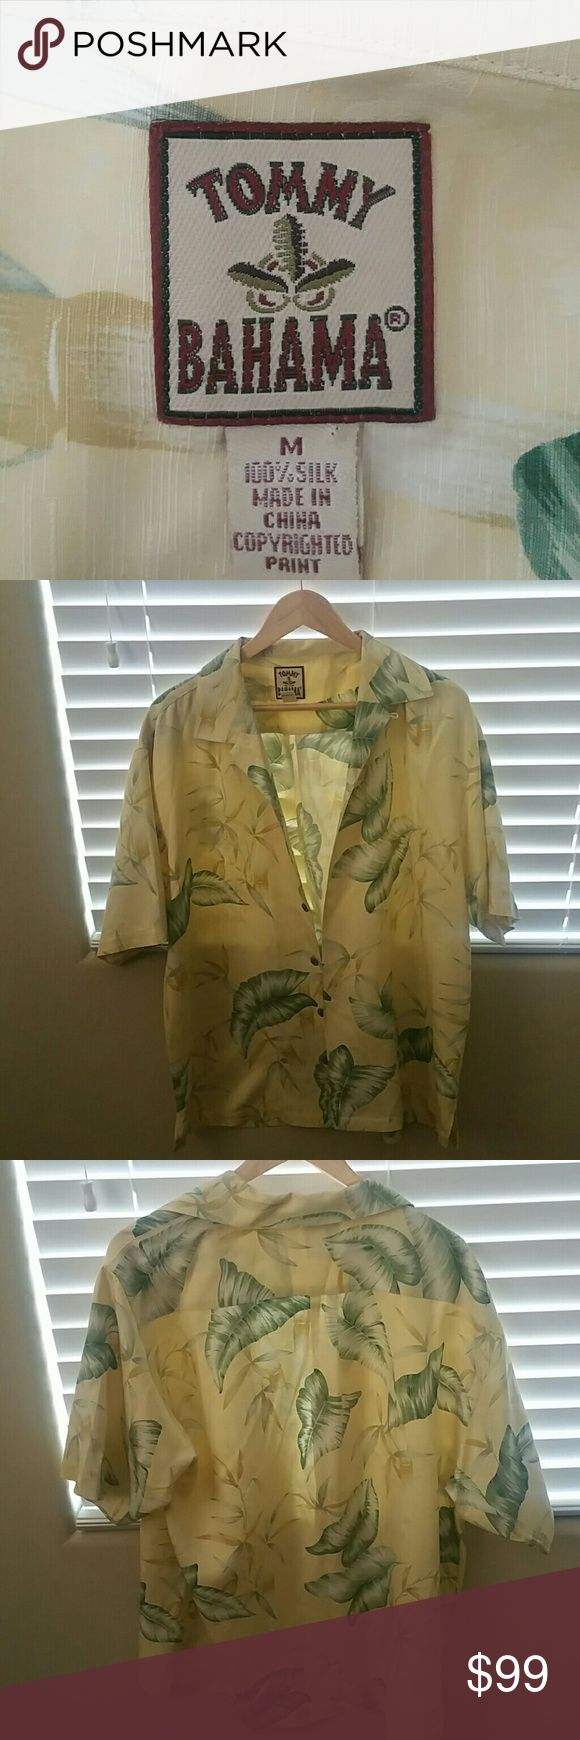 Tommy Bahama • Short Sleeve Dress Shirt New without tags from smoke free home. 100% silk. Authentic Tommy Bahama brand. Fits size M-L. Feel free to bundle or/and make an offer! Fast shipping on all orders. Tommy Bahama Shirts Dress Shirts